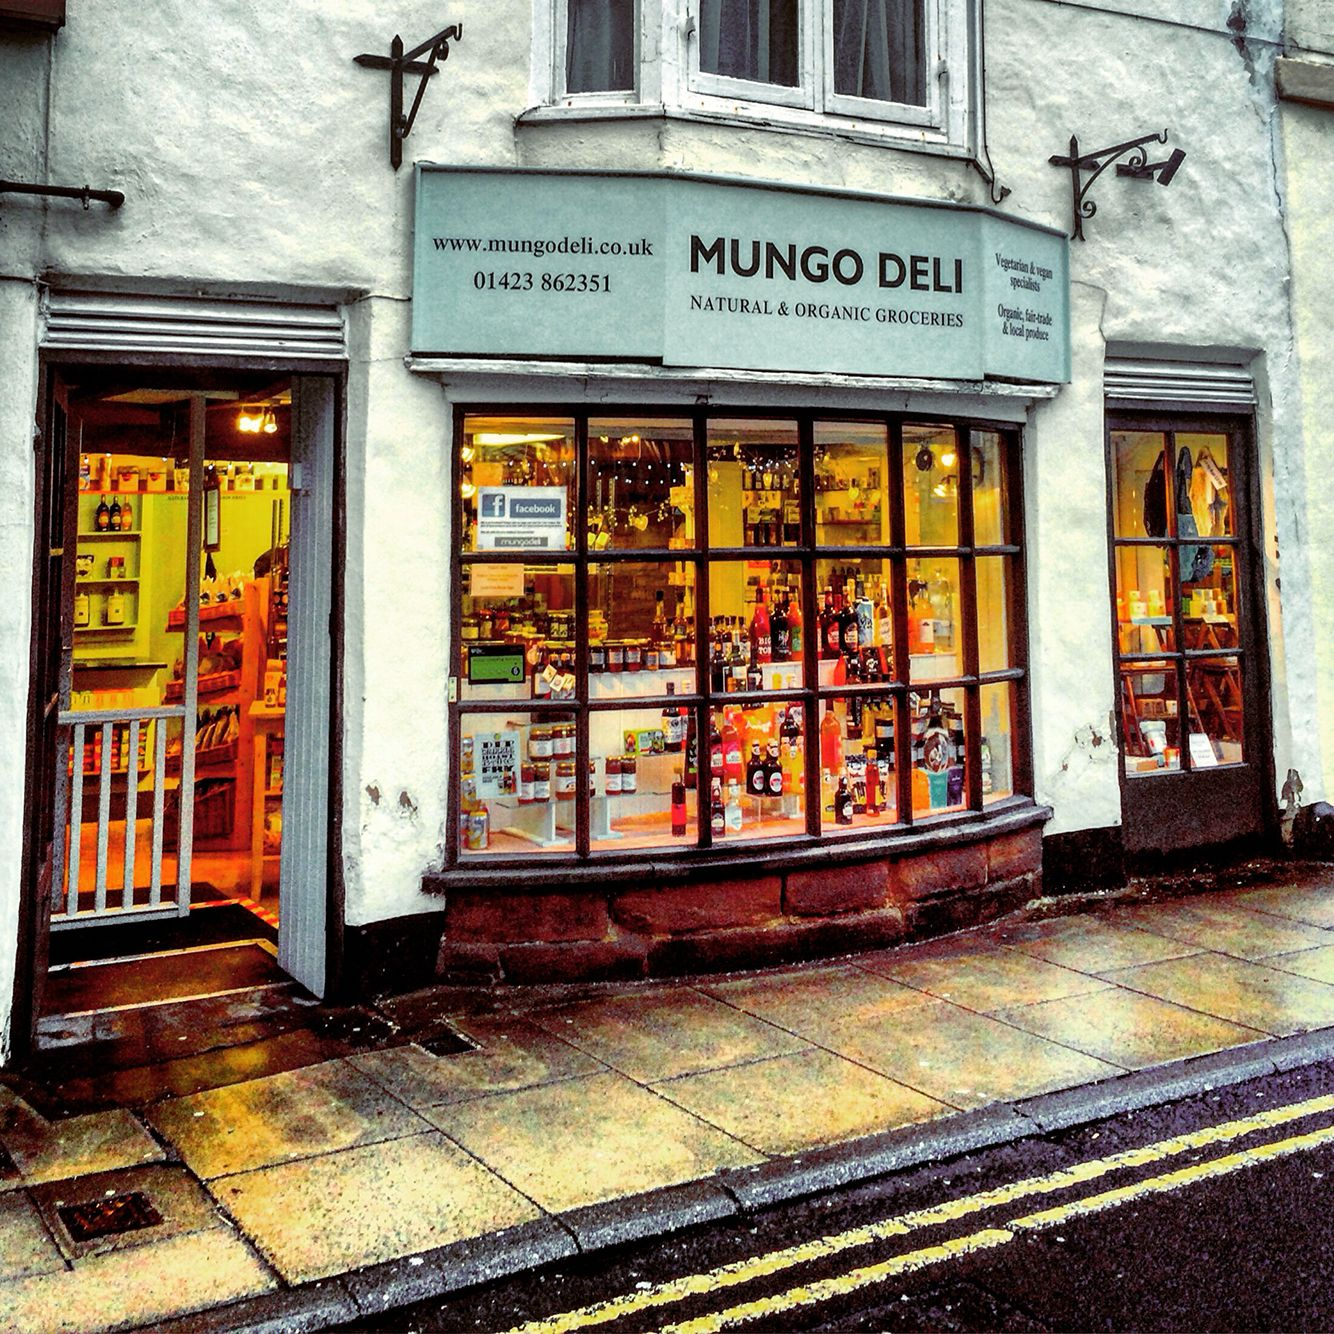 Mungo Deli Shop in Knaresborough